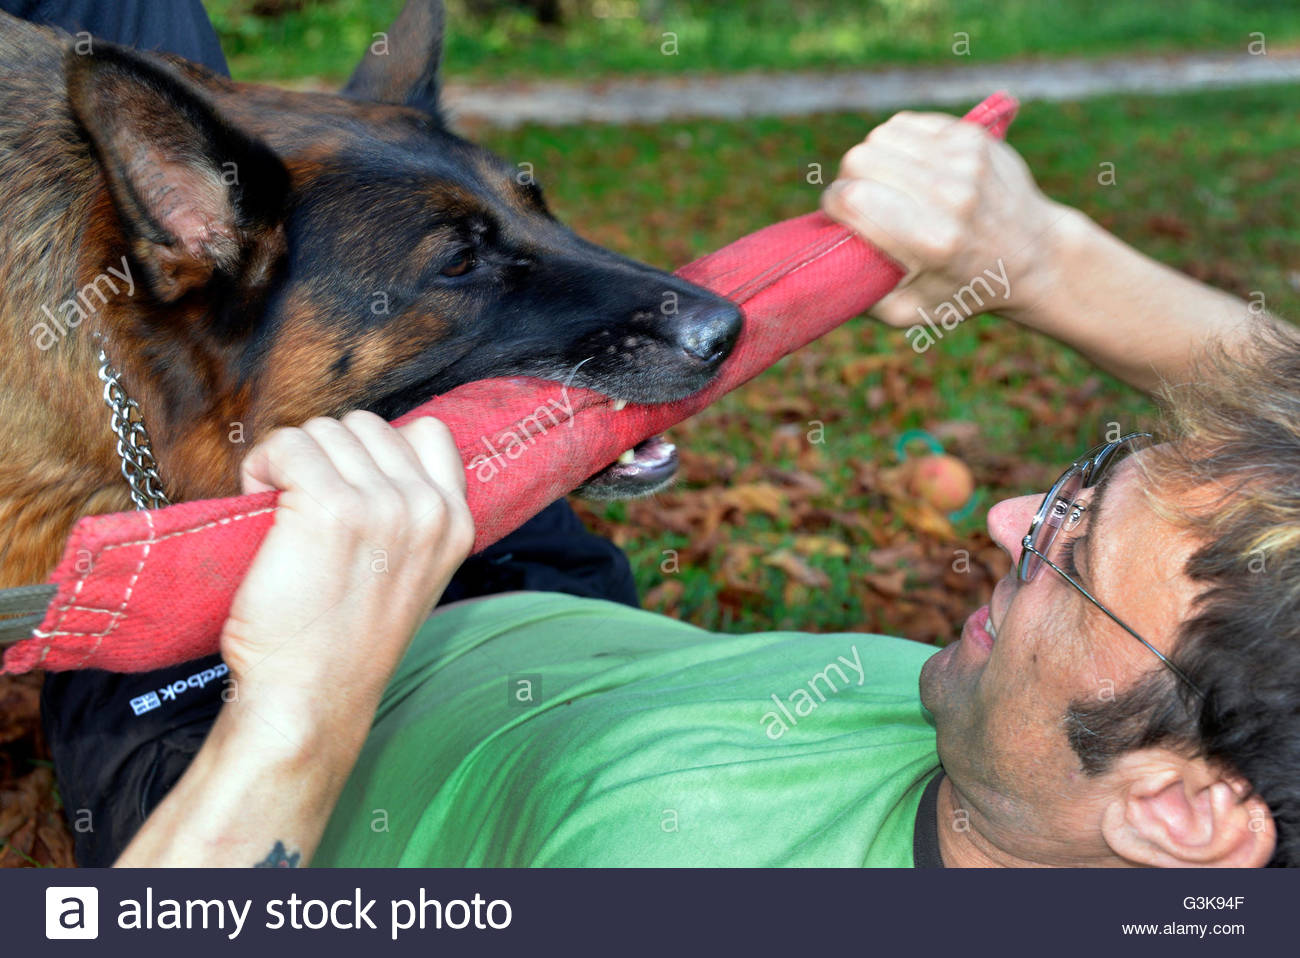 Master and his obedient German Shepherd dog bite training exercise - Stock Image